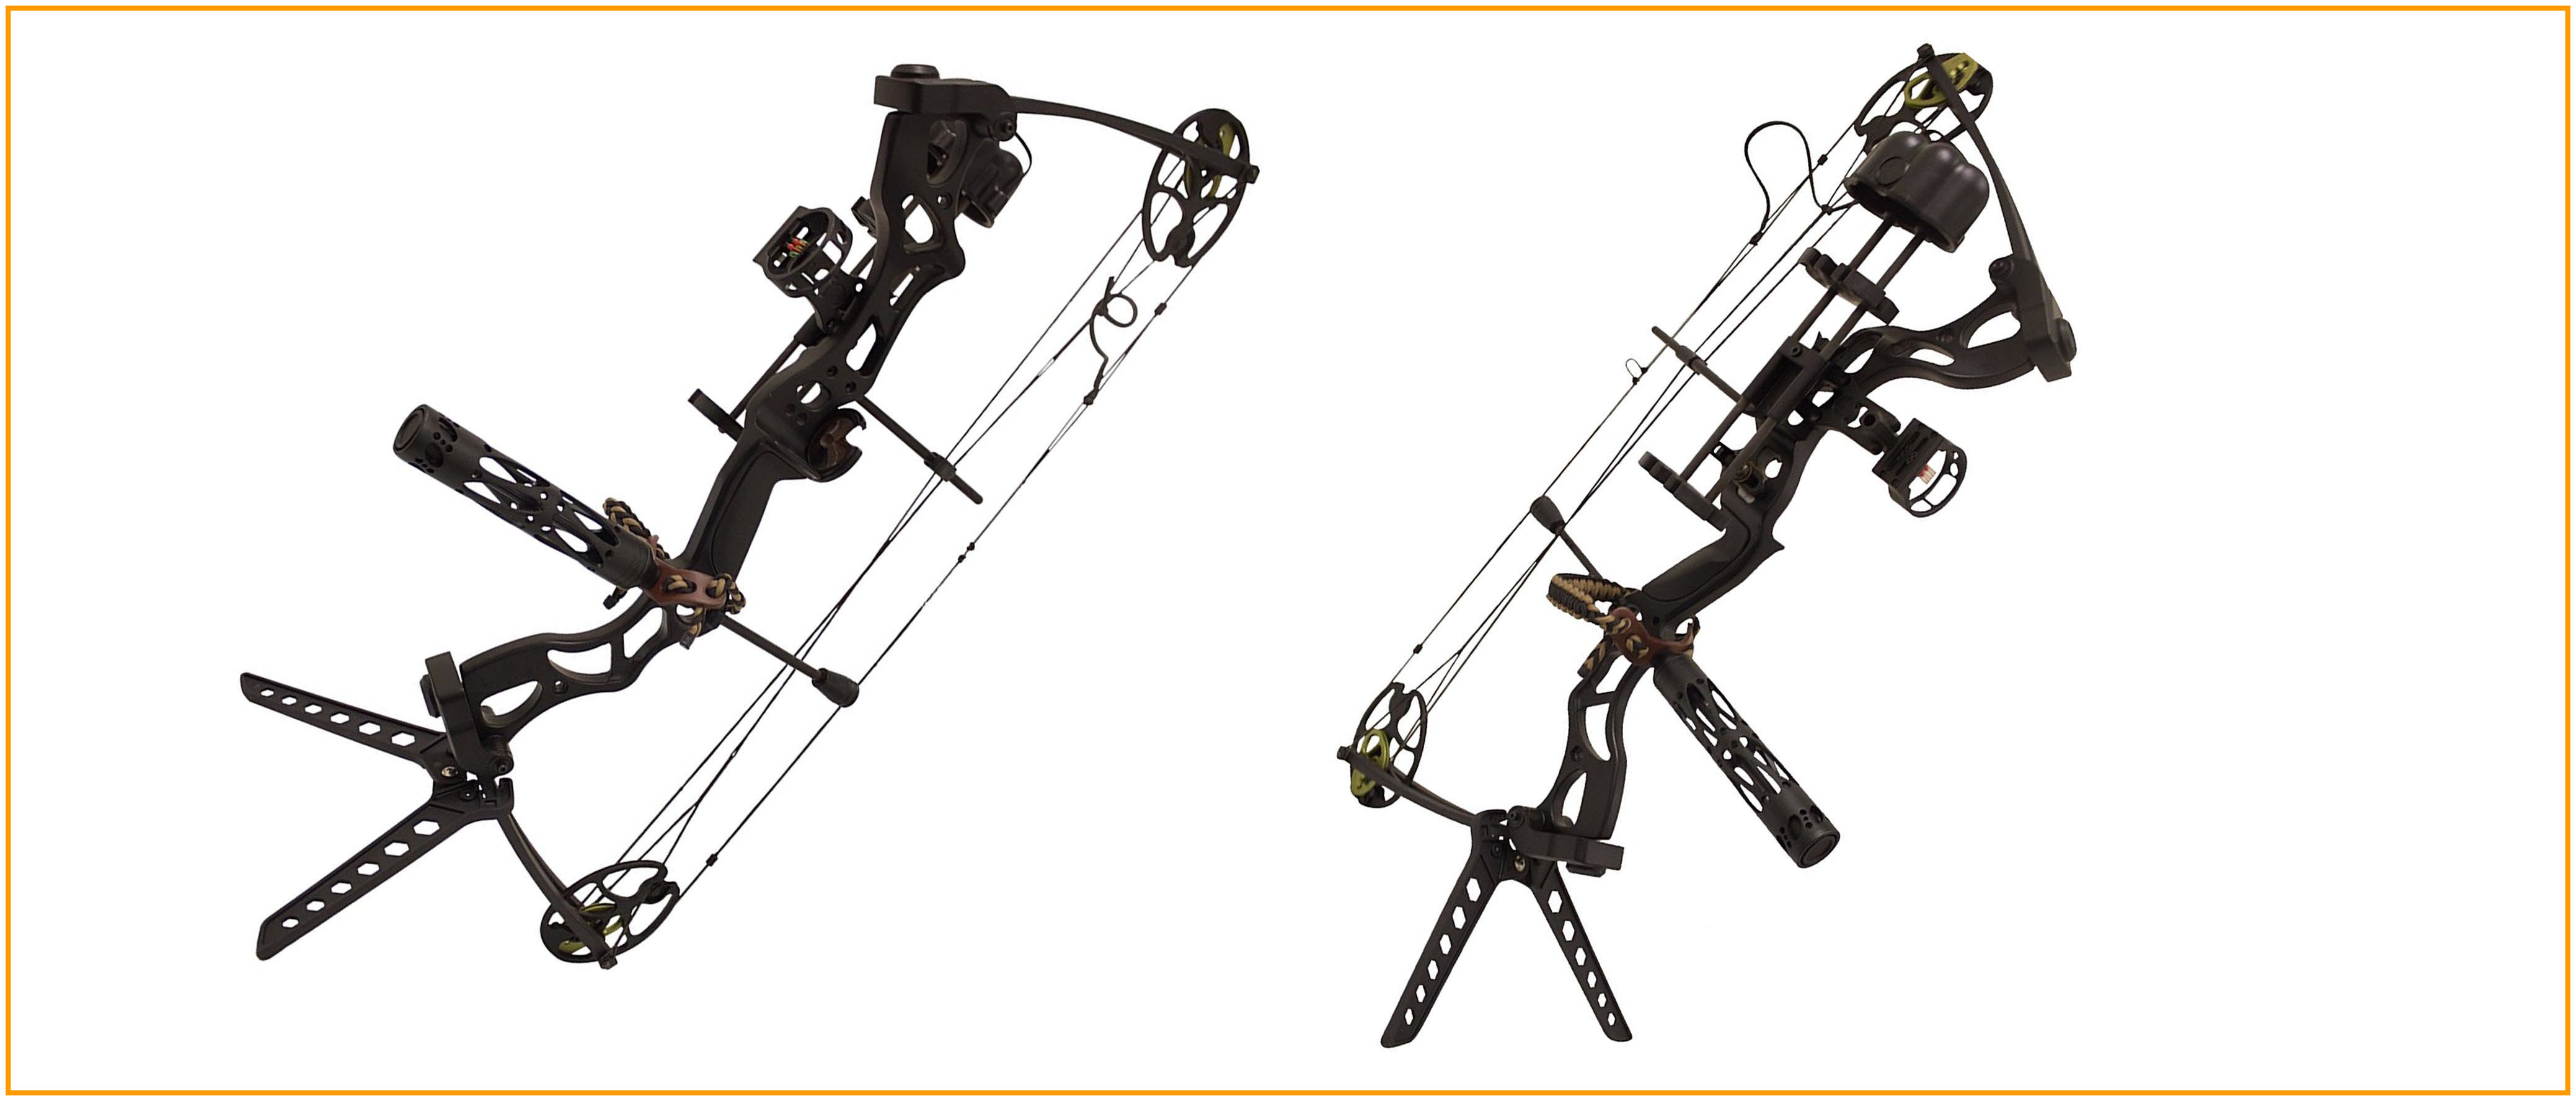 SAS-Rage-70-Lbs-30-Compound-Bow-e1525202449845